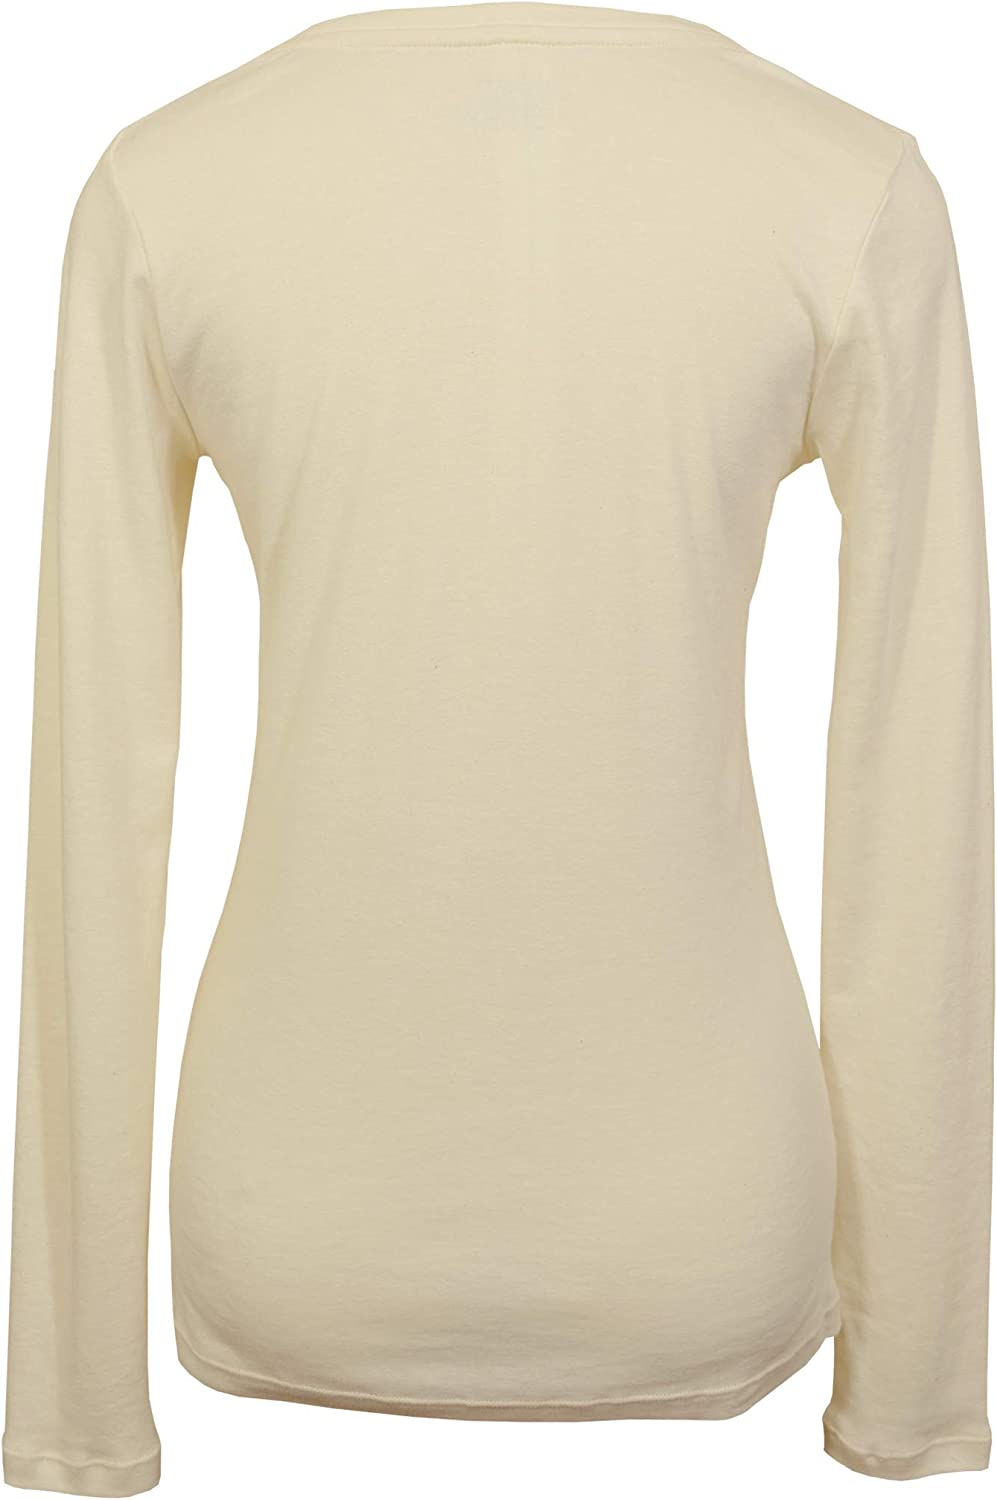 Ecoland Womens Organic Cotton Long Sleeve Fitted Crew Neck Tee Made in USA